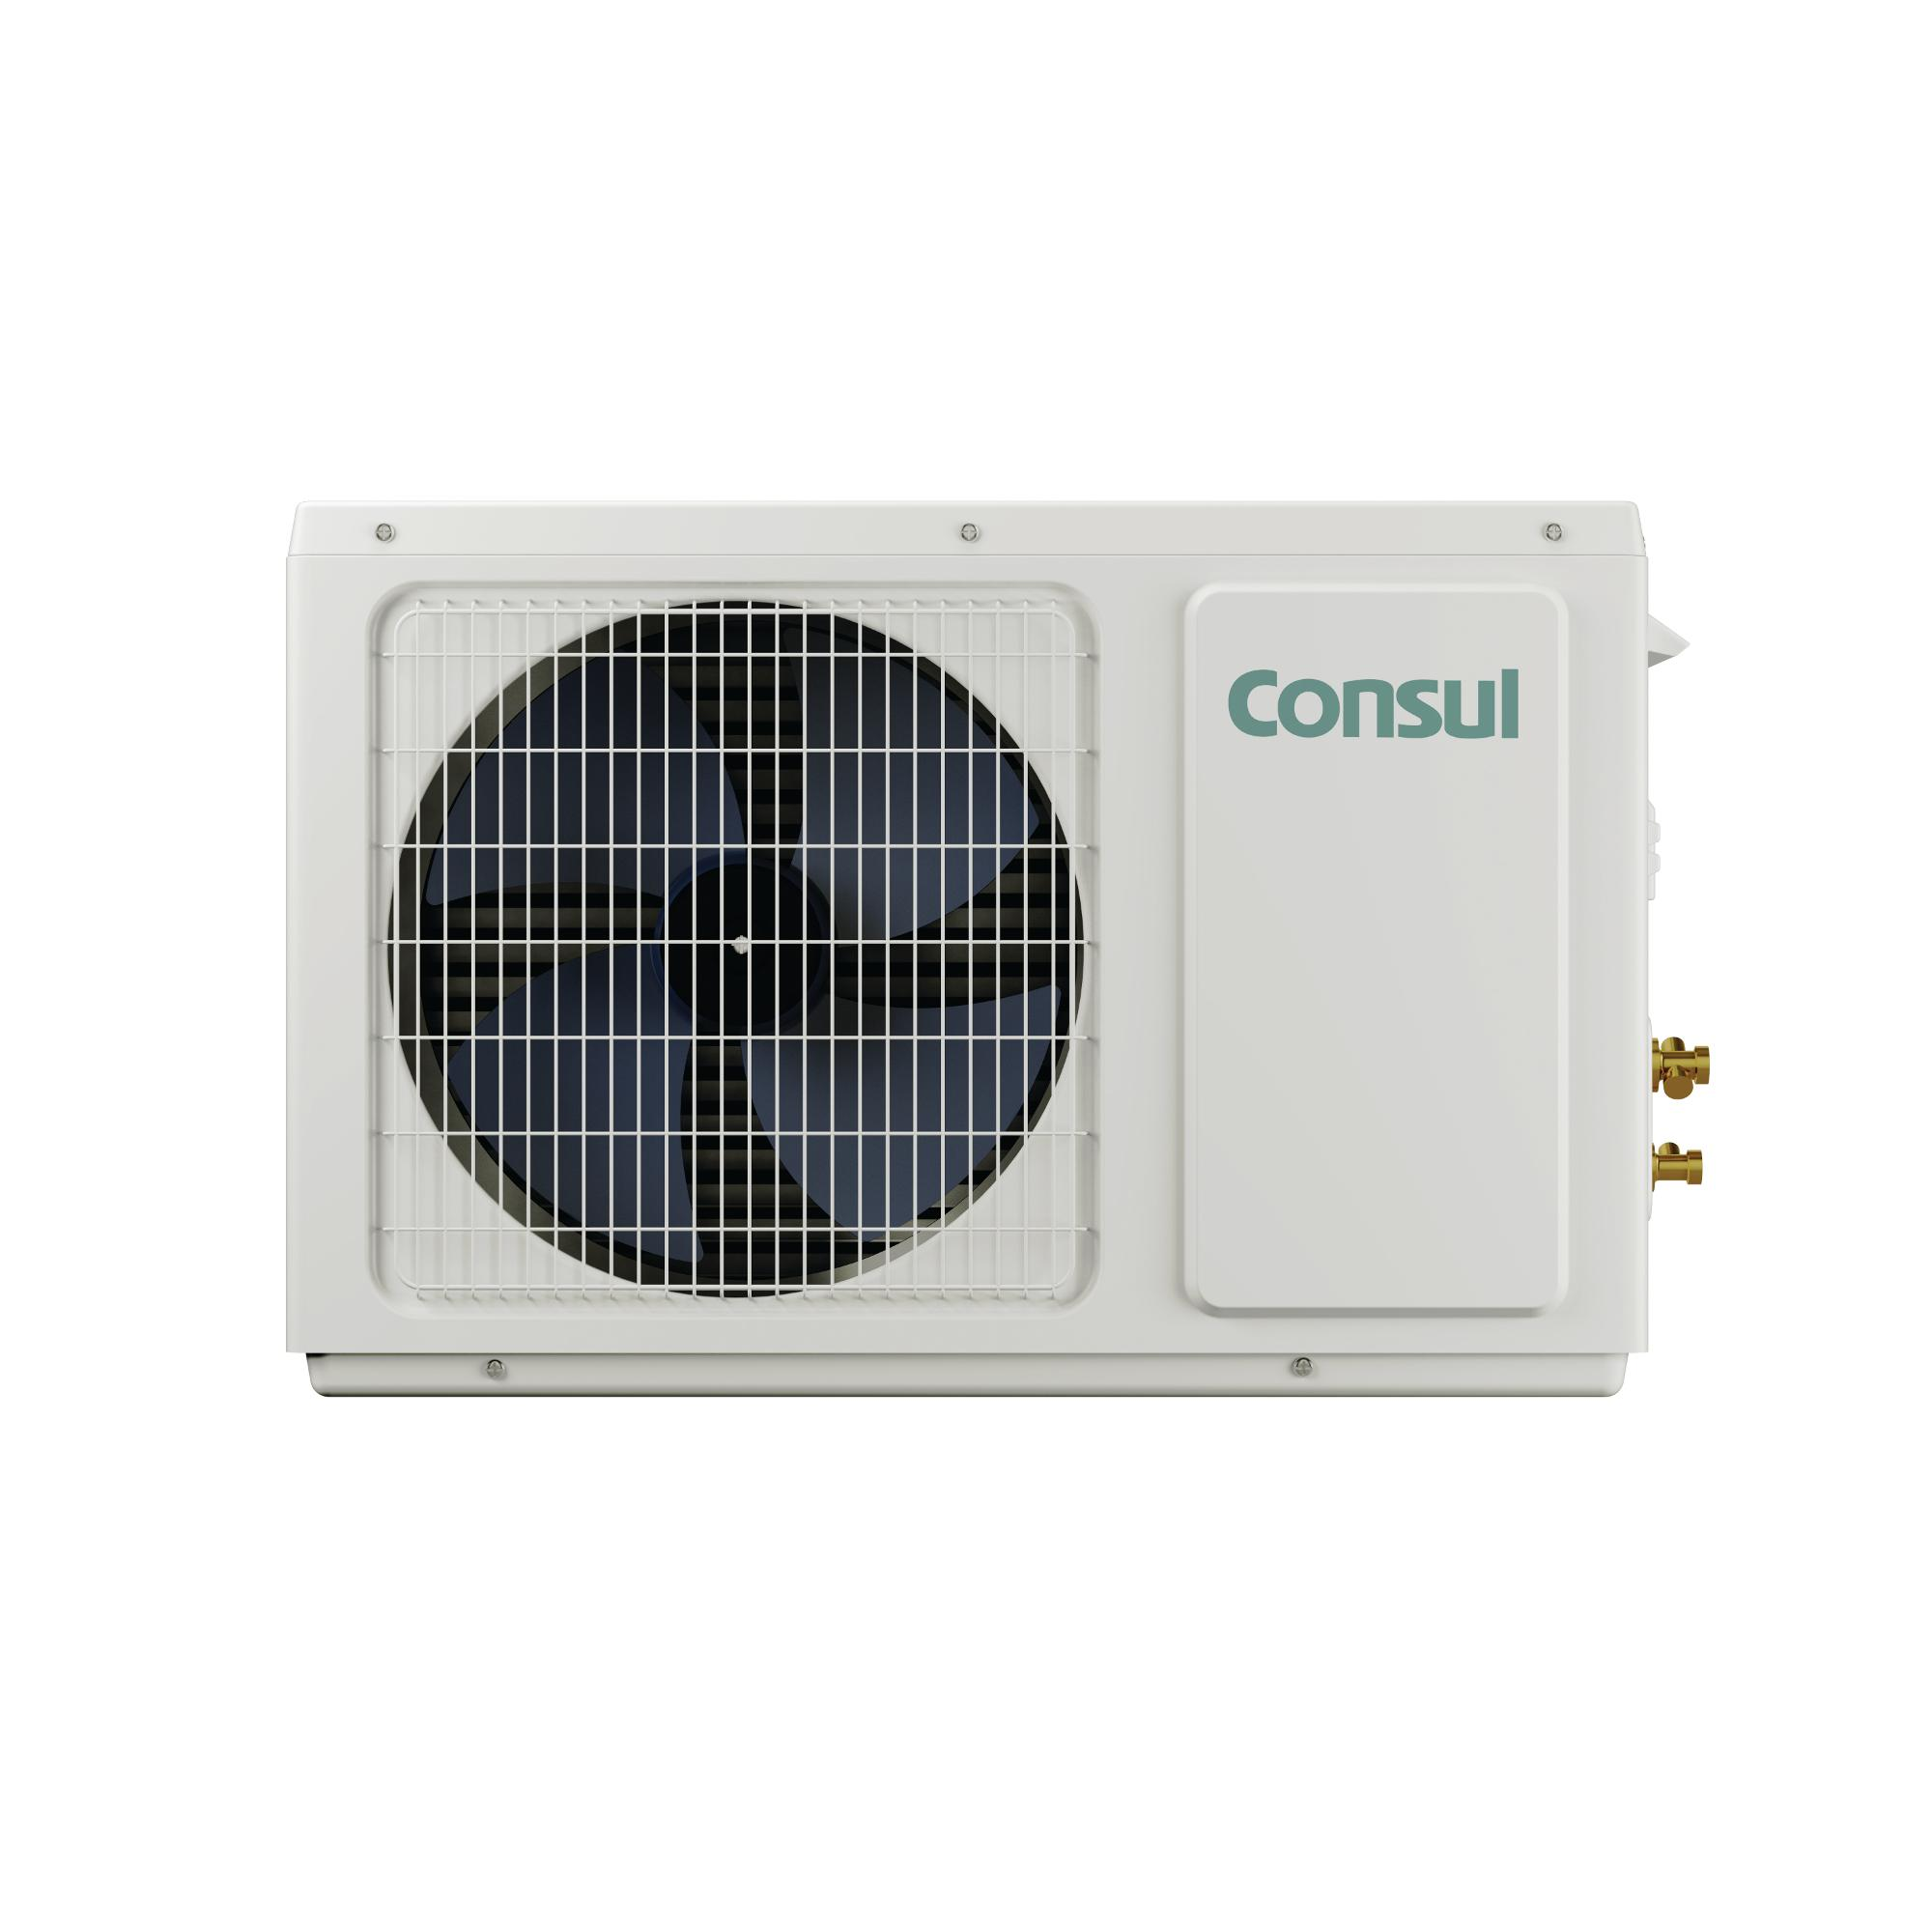 Ar condicionado split consul 22000 btus inverter quente e for Consul monitoring